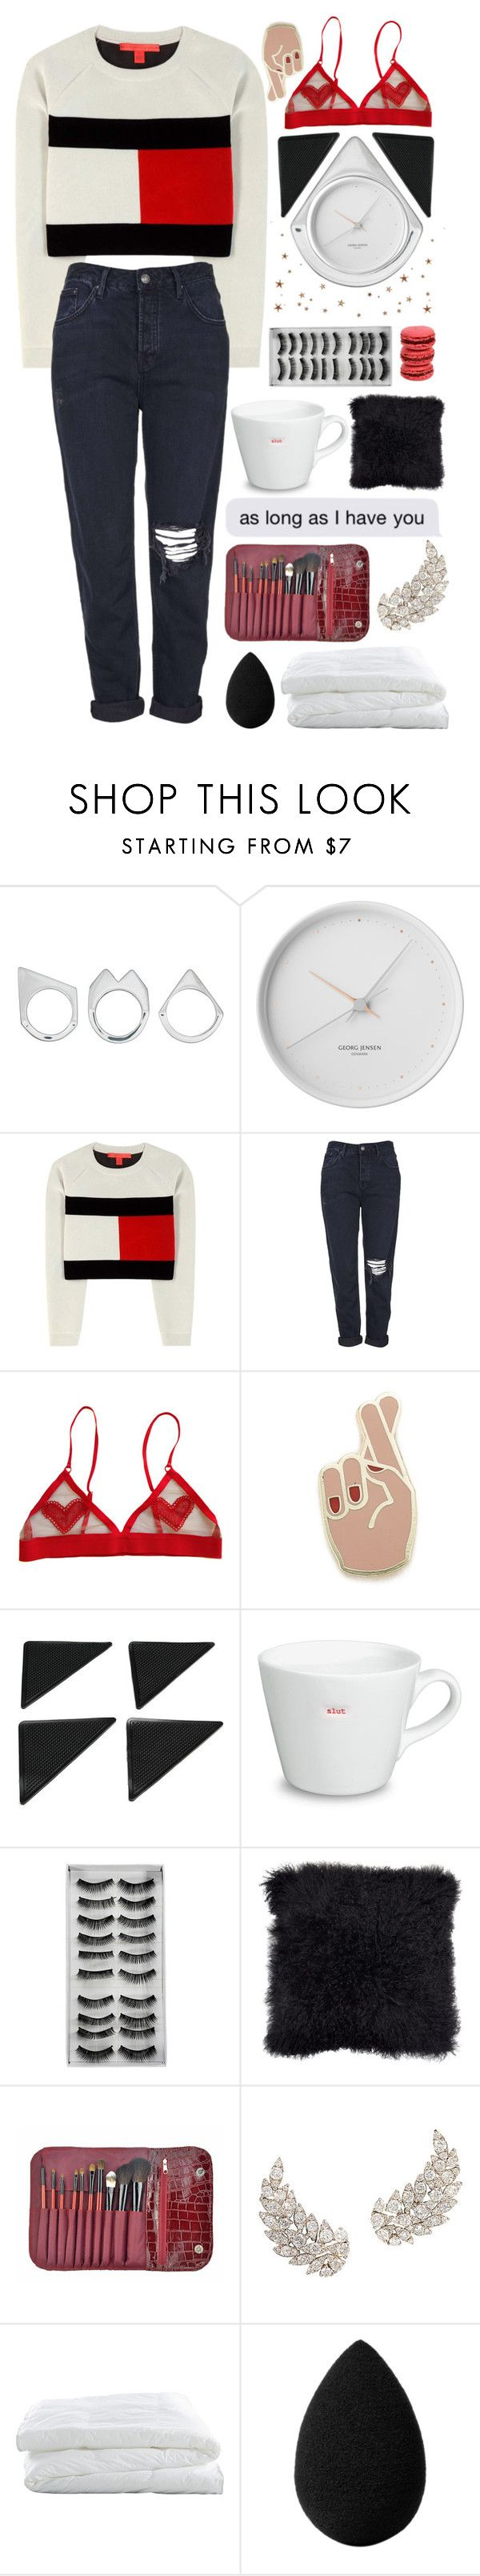 """as long as i have you"" by taraturk ❤ liked on Polyvore featuring Moratorium, Georg Jensen, Tommy Hilfiger, Topshop, Georgia Perry, Ladurée, Keith Brymer Jones, Crate and Barrel, beautyblender and tommyhilfinger"